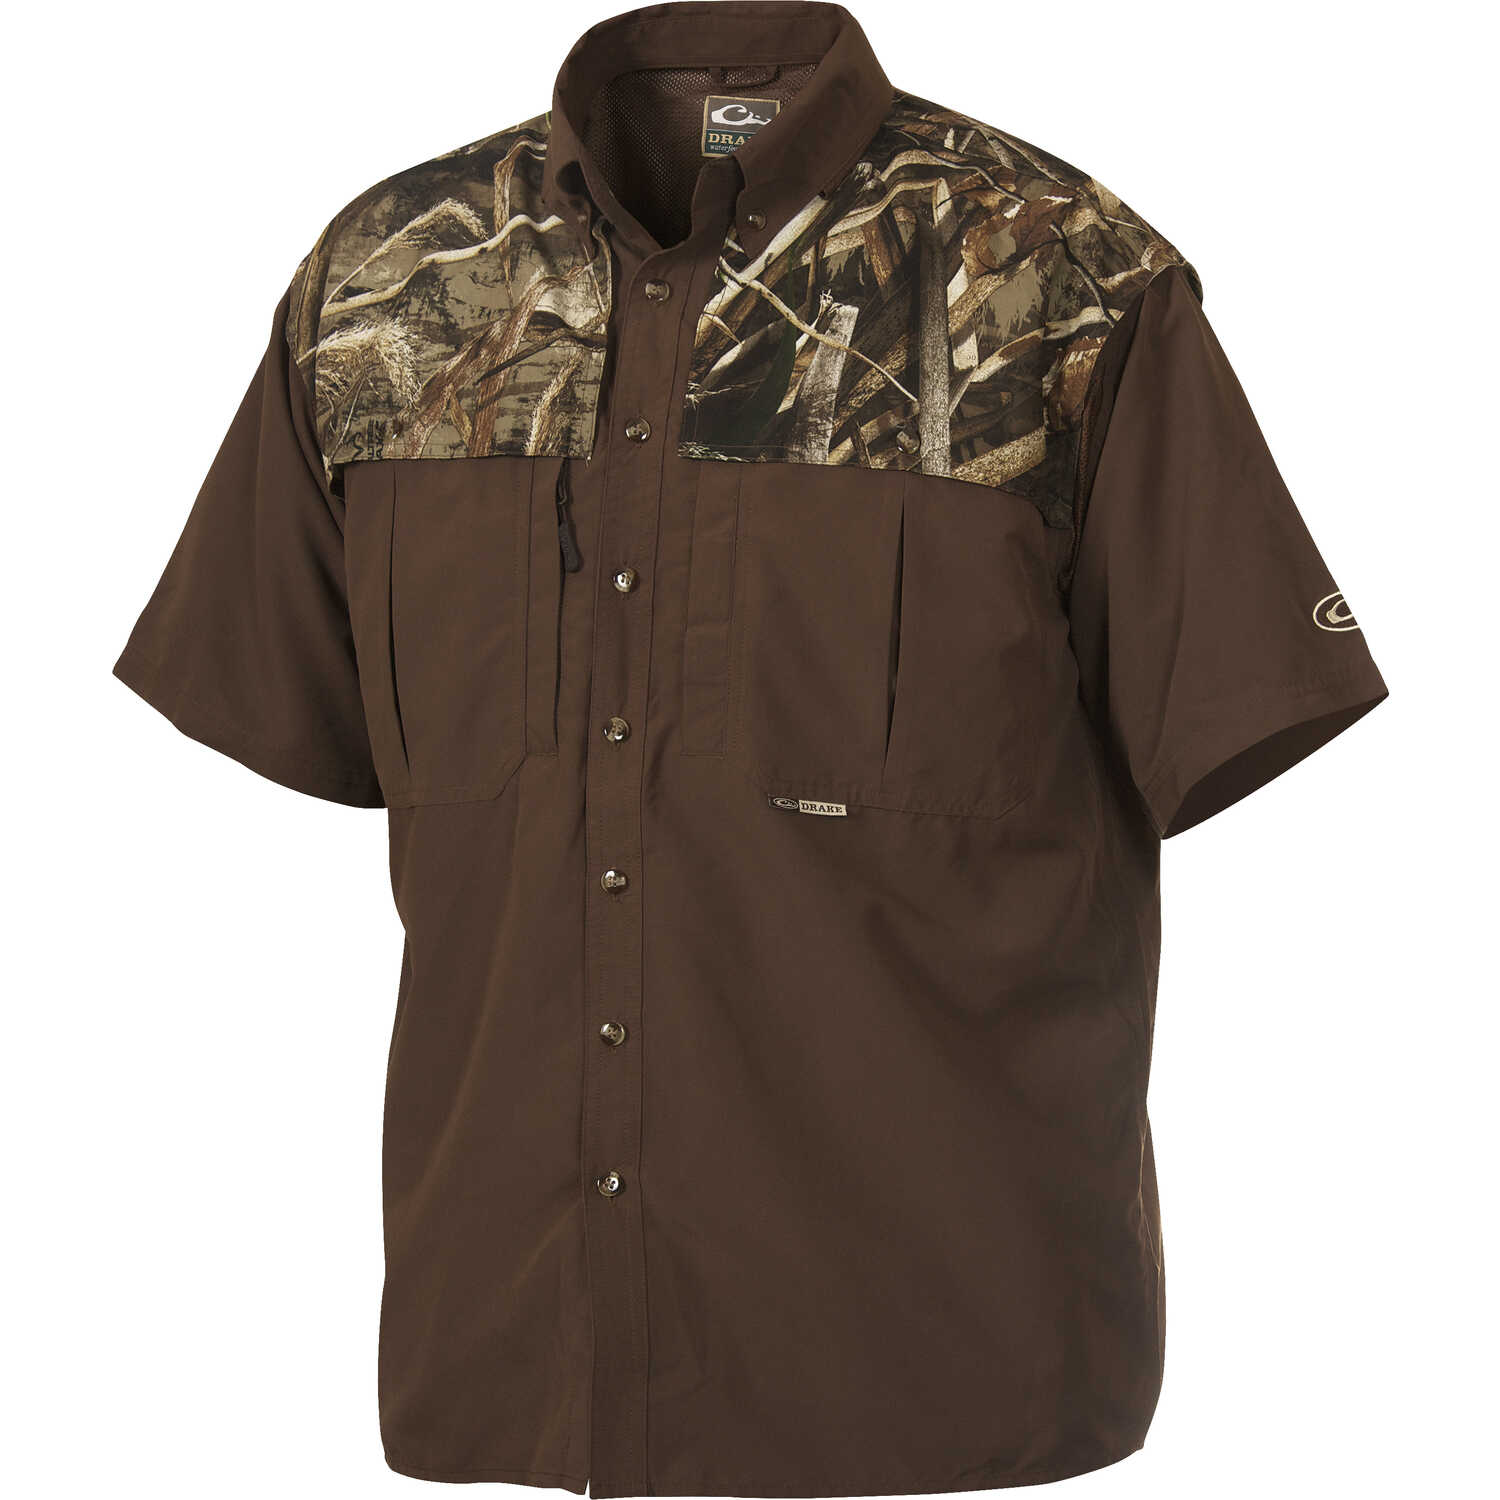 Drake  EST  M  Short Sleeve  Men's  Collared  Brown/Camo  Work Shirt